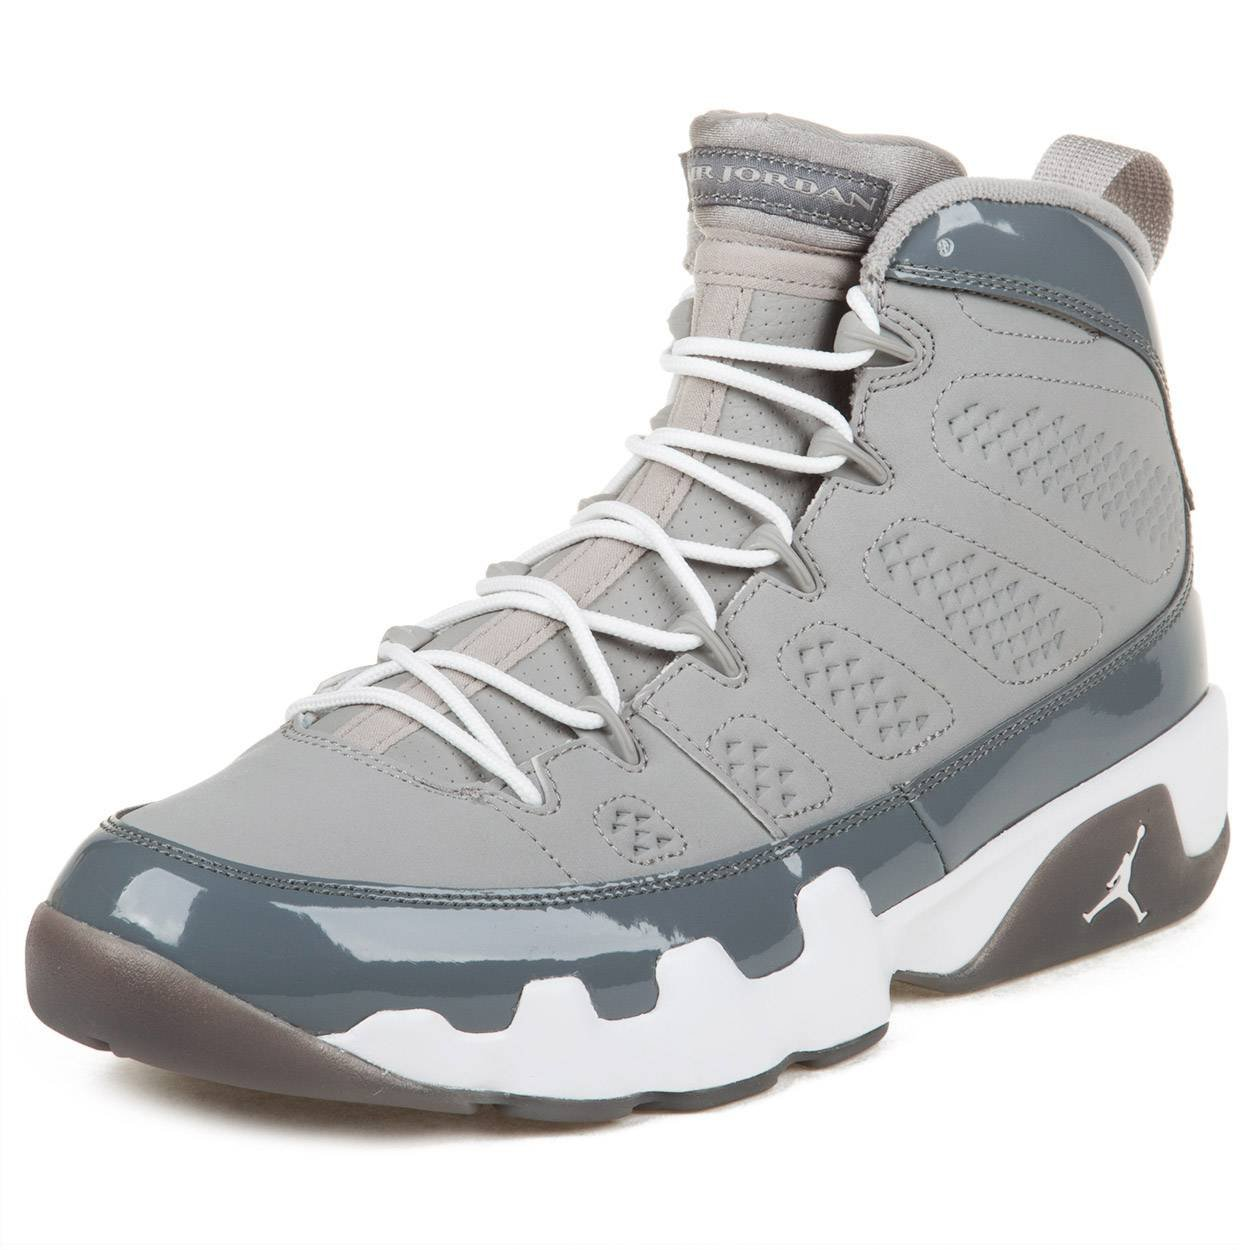 finest selection e8b8c fcdc0 Amazon.com   Nike Mens Air Jordan 9 Retro Cool Grey Medium Grey White  Leather Basketball Shoes Size 8   Basketball